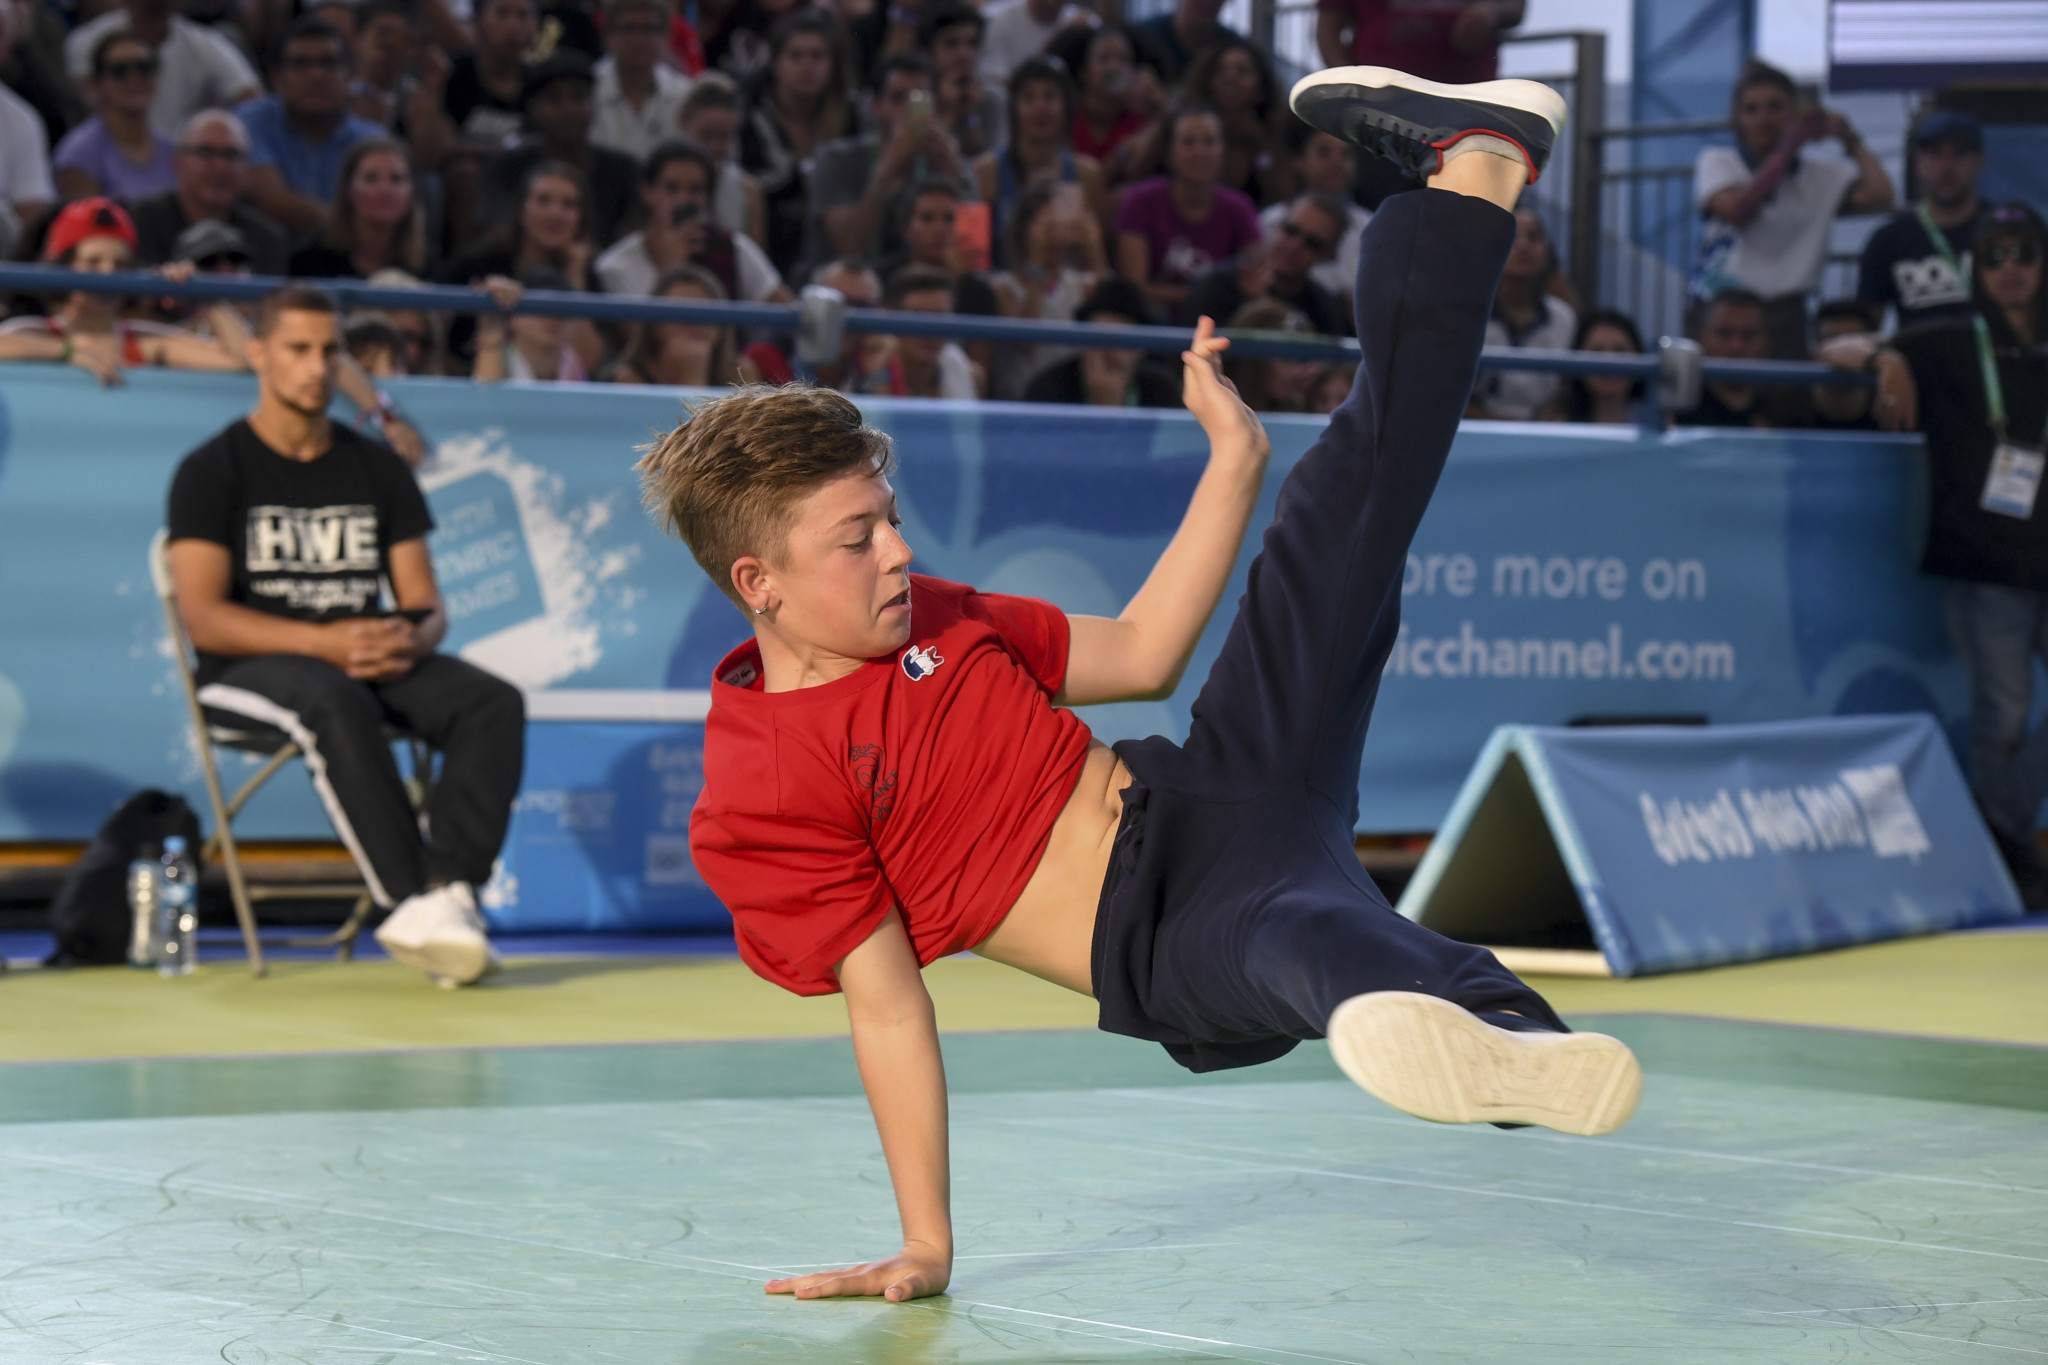 Breakingdancing featured at the Buenos Aires 2018 Youth Olympics ©Getty Images